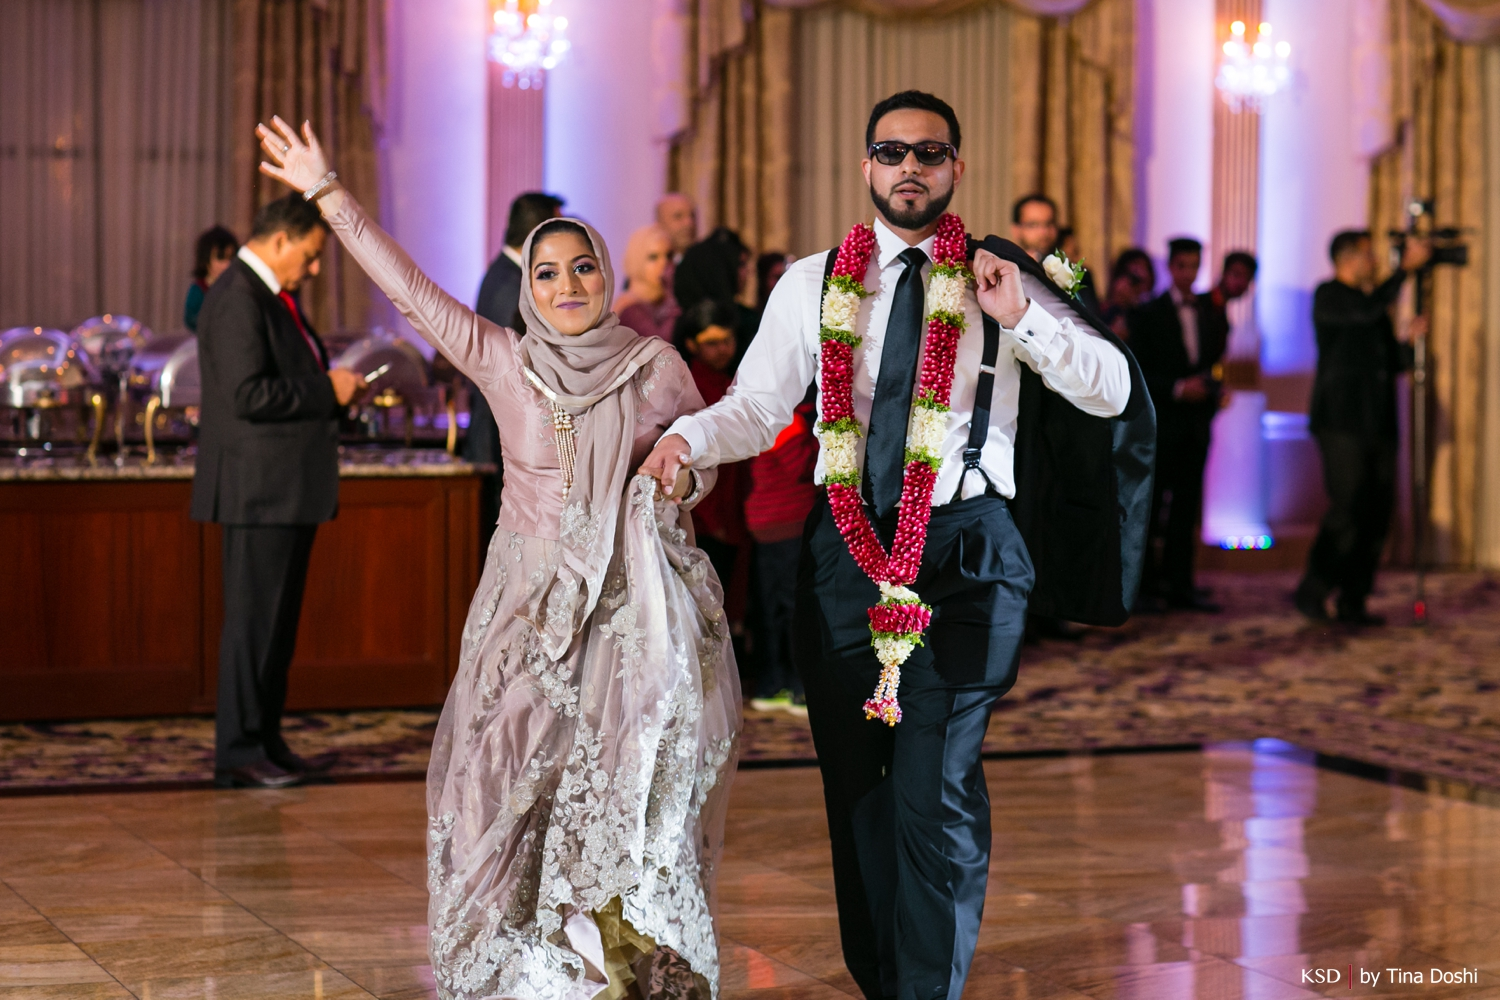 nj_south_asian_wedding_0102